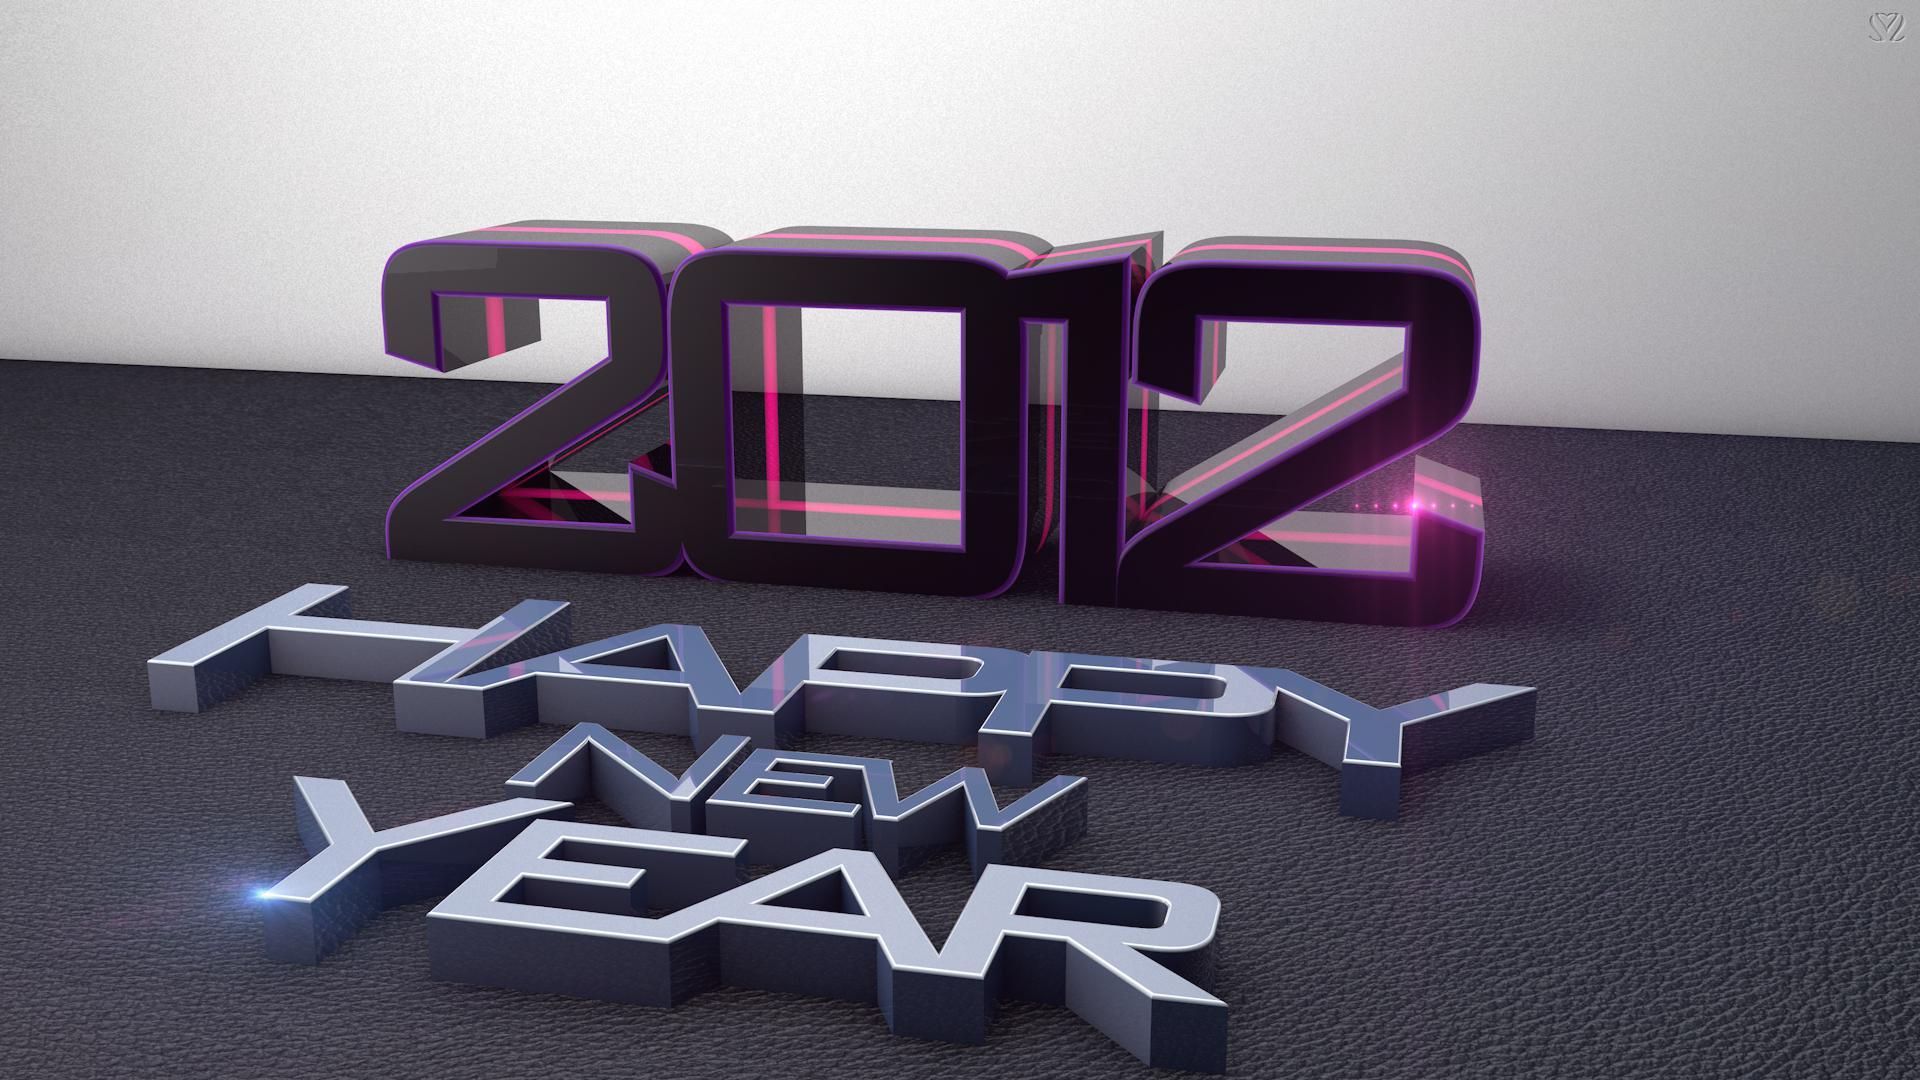 2012 Happy New Year 2 1532.82 Kb